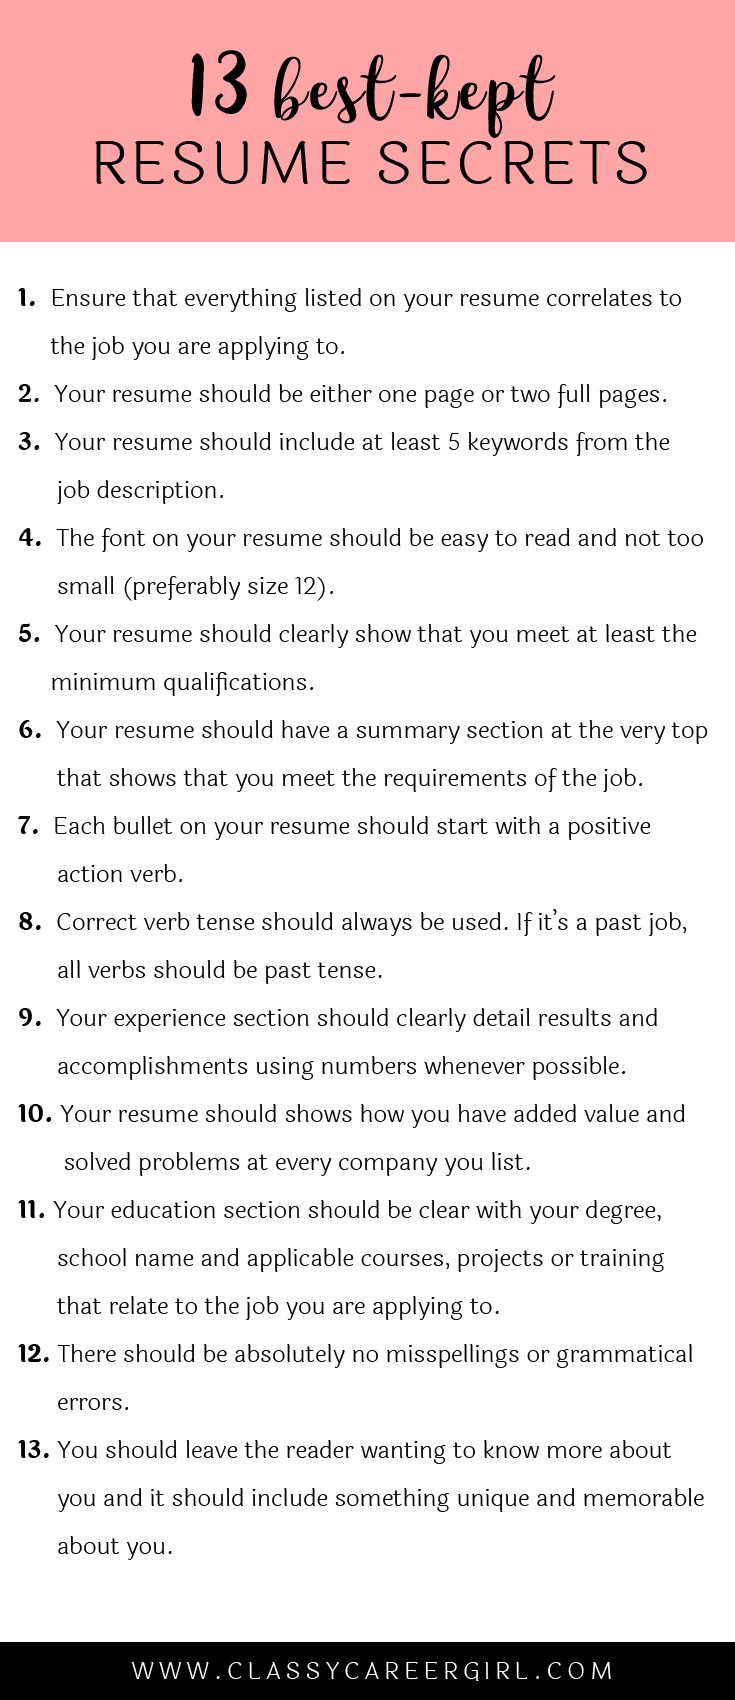 Opposenewapstandardsus  Wonderful  Ideas About Resume On Pinterest  Cv Format Resume Cv And  With Magnificent Some Hiring Managers Will Toss Your Resume Out If You Dont Know These  With Charming It Program Manager Resume Also Skills To Put On A Resume For Retail In Addition Strong Communication Skills Resume Examples And Free Resume Search For Recruiters As Well As Sales Manager Resumes Additionally Advertising Resumes From Pinterestcom With Opposenewapstandardsus  Magnificent  Ideas About Resume On Pinterest  Cv Format Resume Cv And  With Charming Some Hiring Managers Will Toss Your Resume Out If You Dont Know These  And Wonderful It Program Manager Resume Also Skills To Put On A Resume For Retail In Addition Strong Communication Skills Resume Examples From Pinterestcom